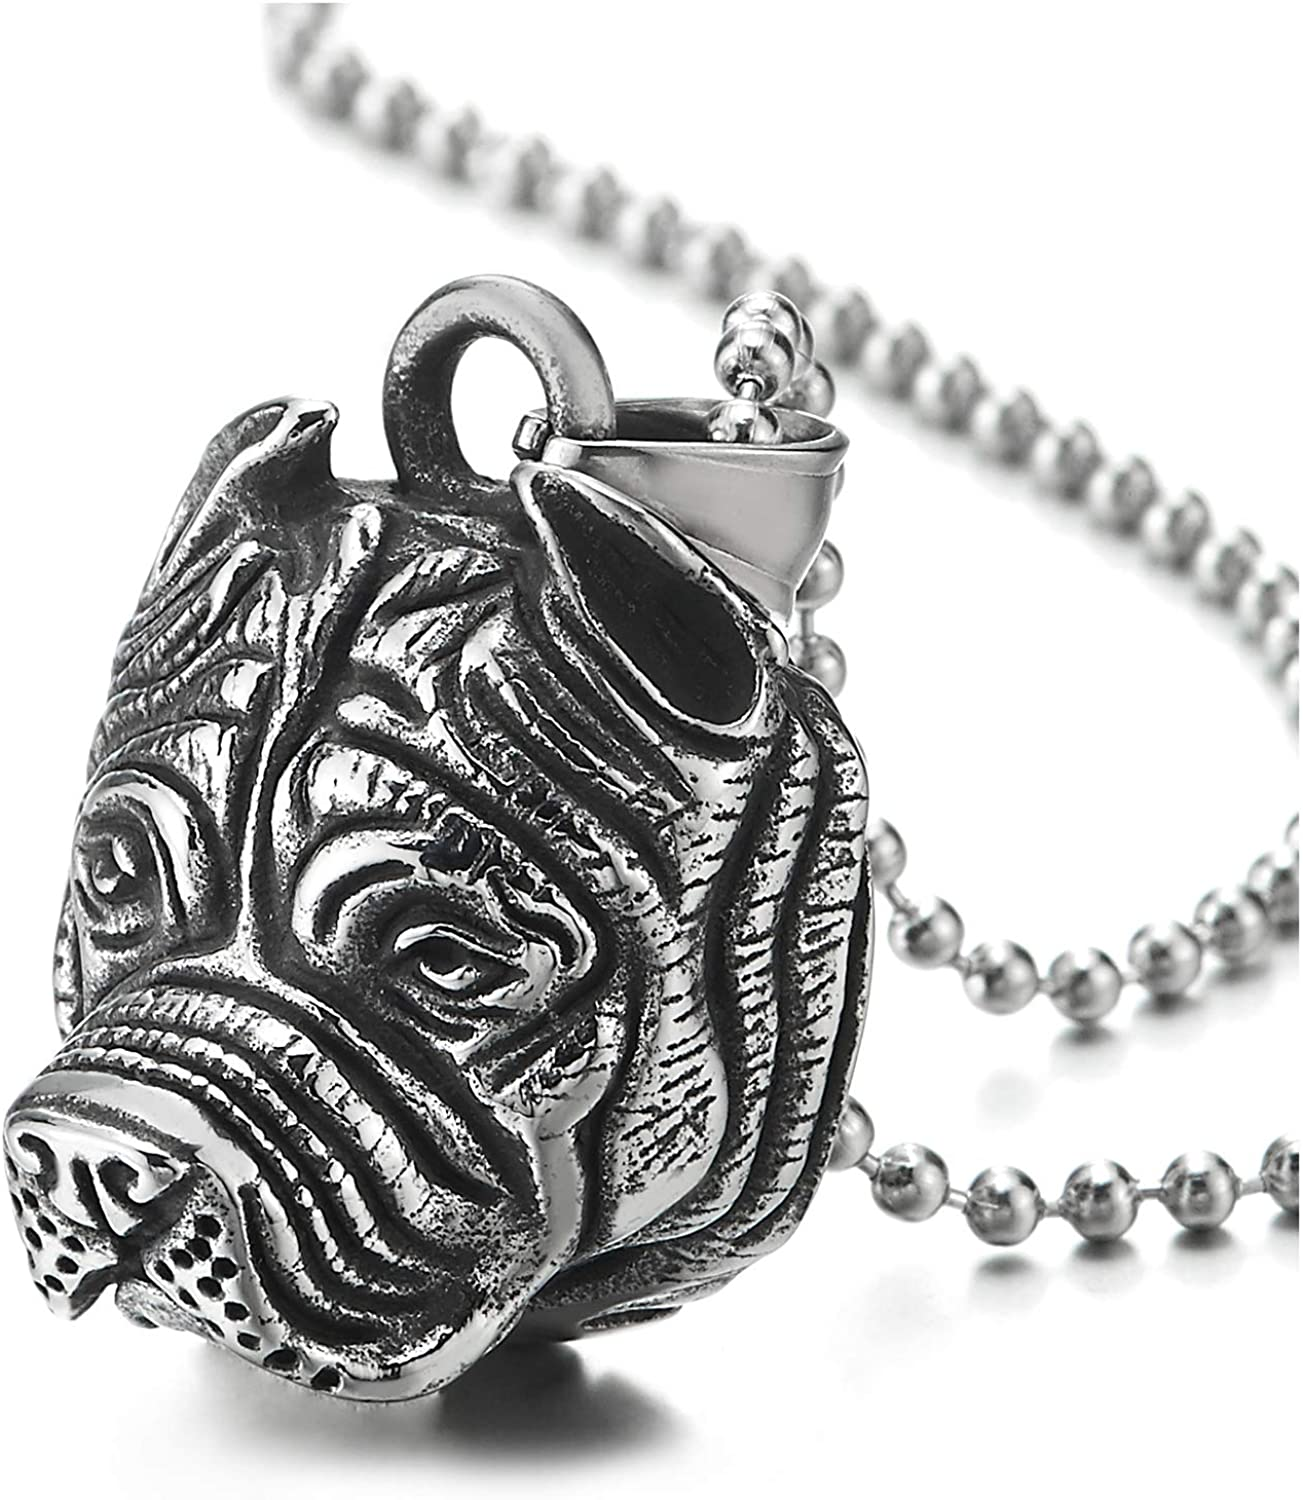 Mens Womens Stainless Steel Vintage Pit Bull Bull Dog Head Pendant Necklace with 30 in Ball Chain